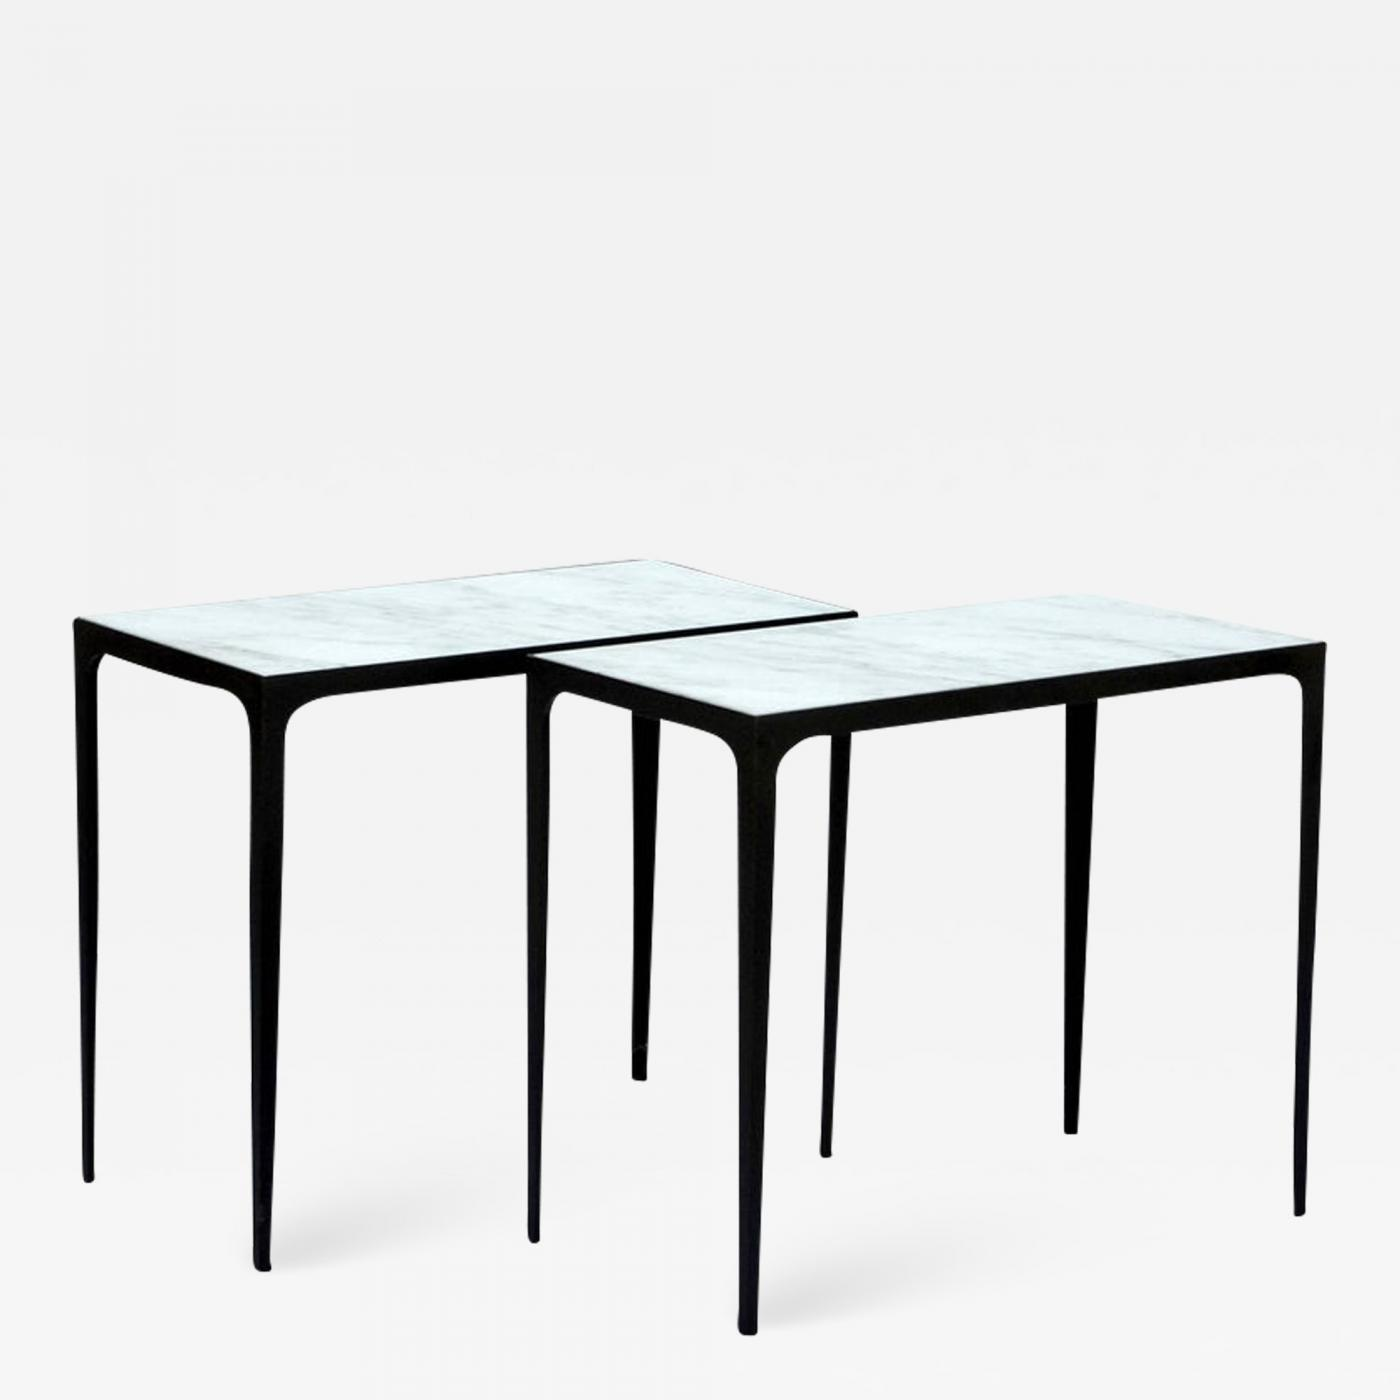 The U0027Esquisseu0027 Iron And Honed Marble Side Tables